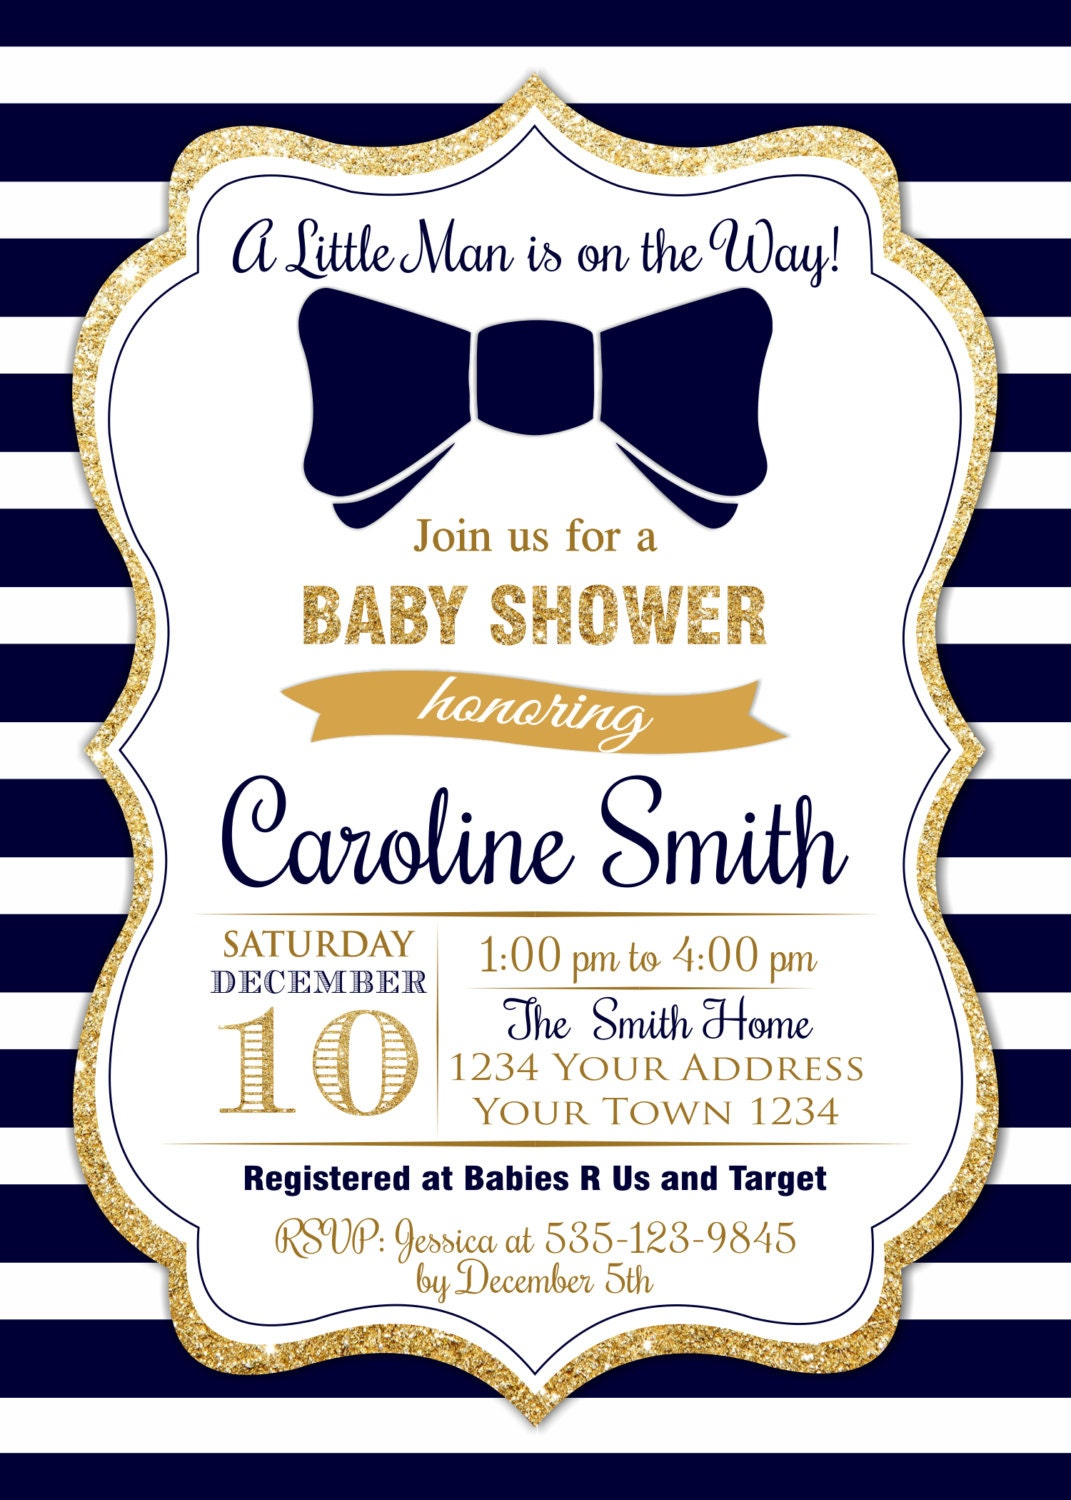 invitations baby templates invitation invites chic for a boy free fascinating shower additional